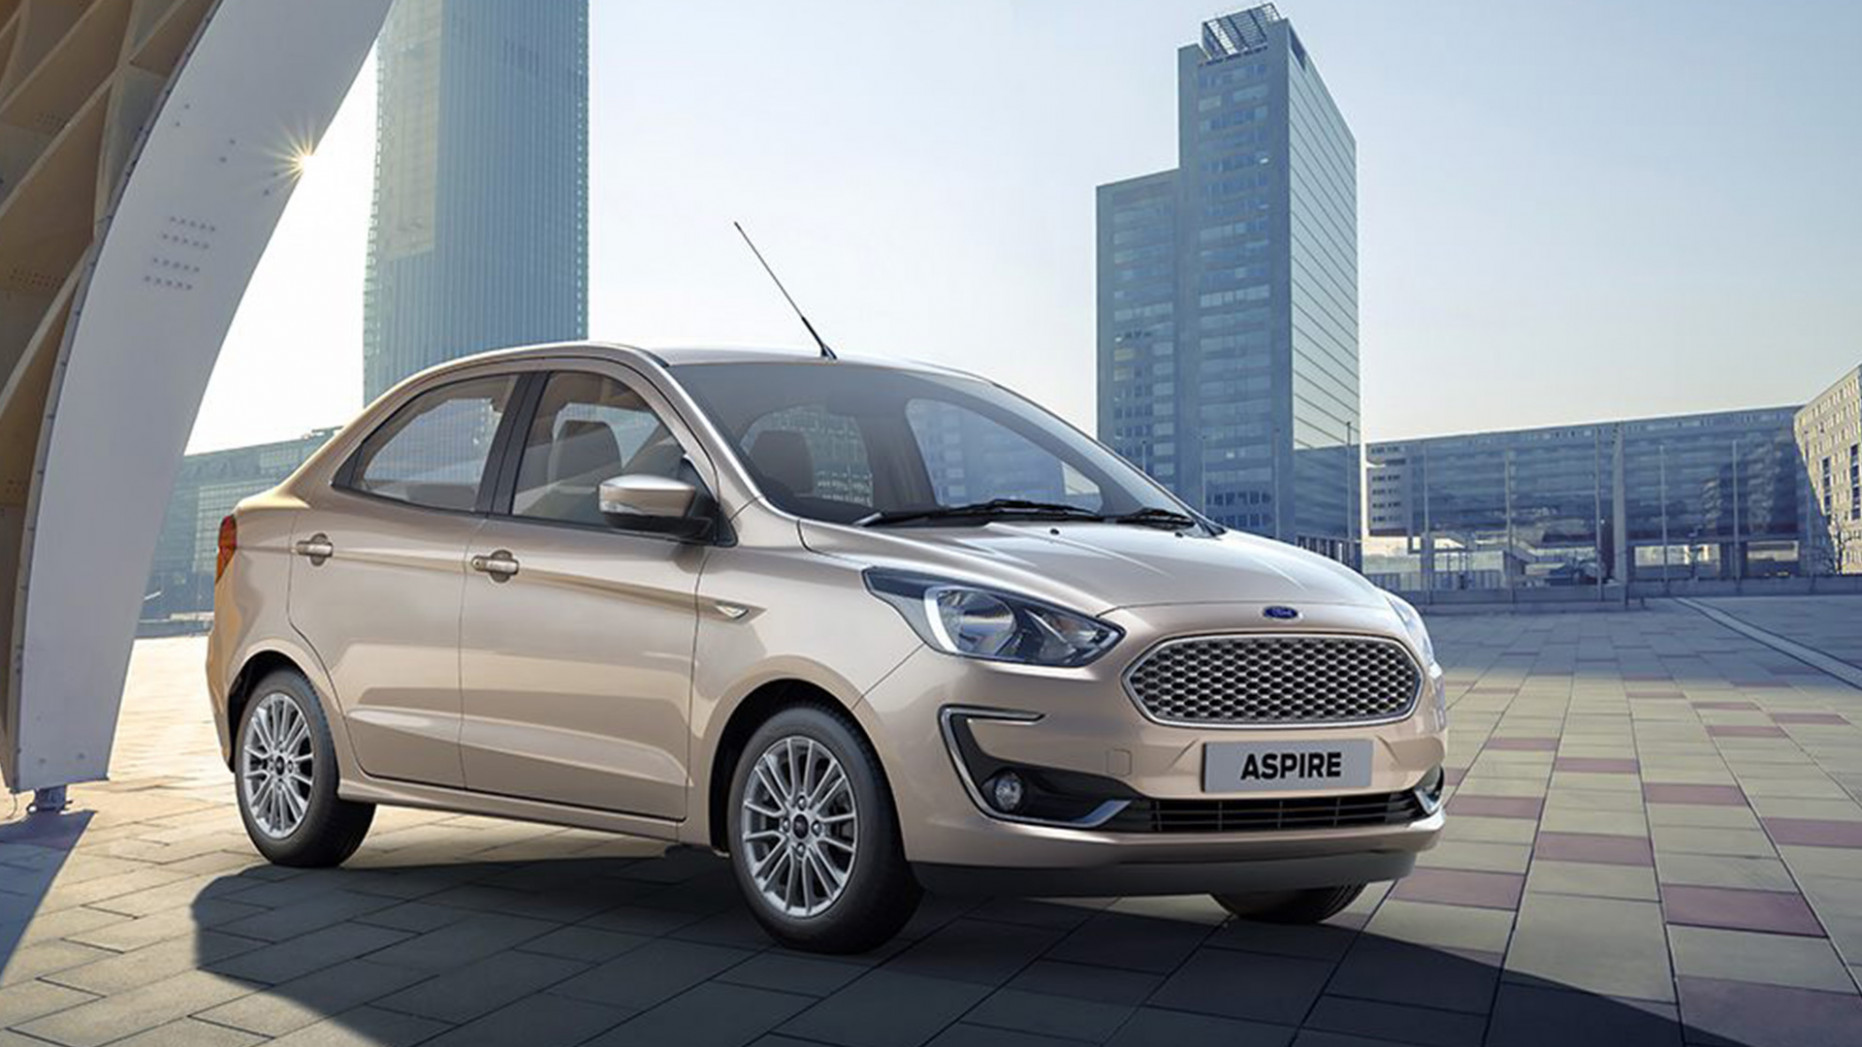 Ford Aspire 7 - Price, Mileage, Reviews, Specification, Gallery ..